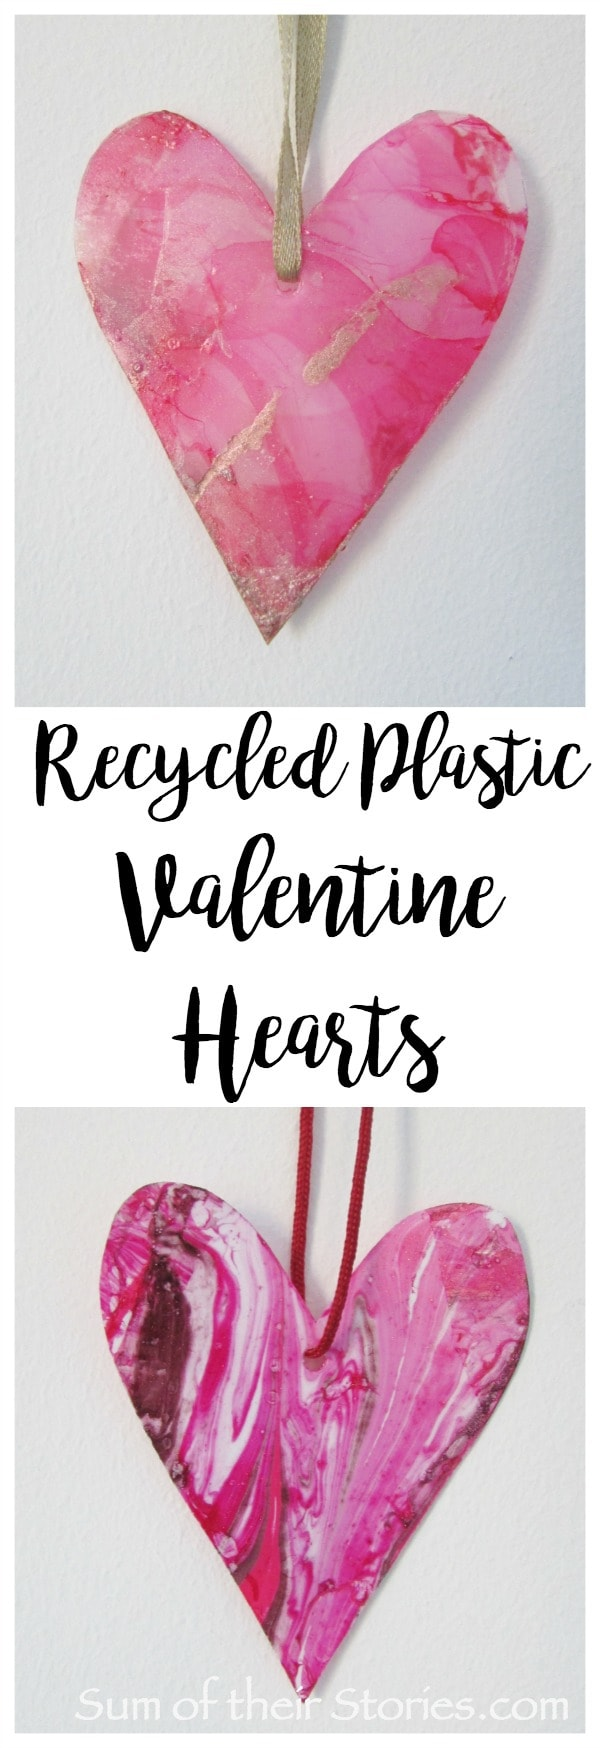 Valentine's Day Crafts To Do With Kids Using Things Around the House